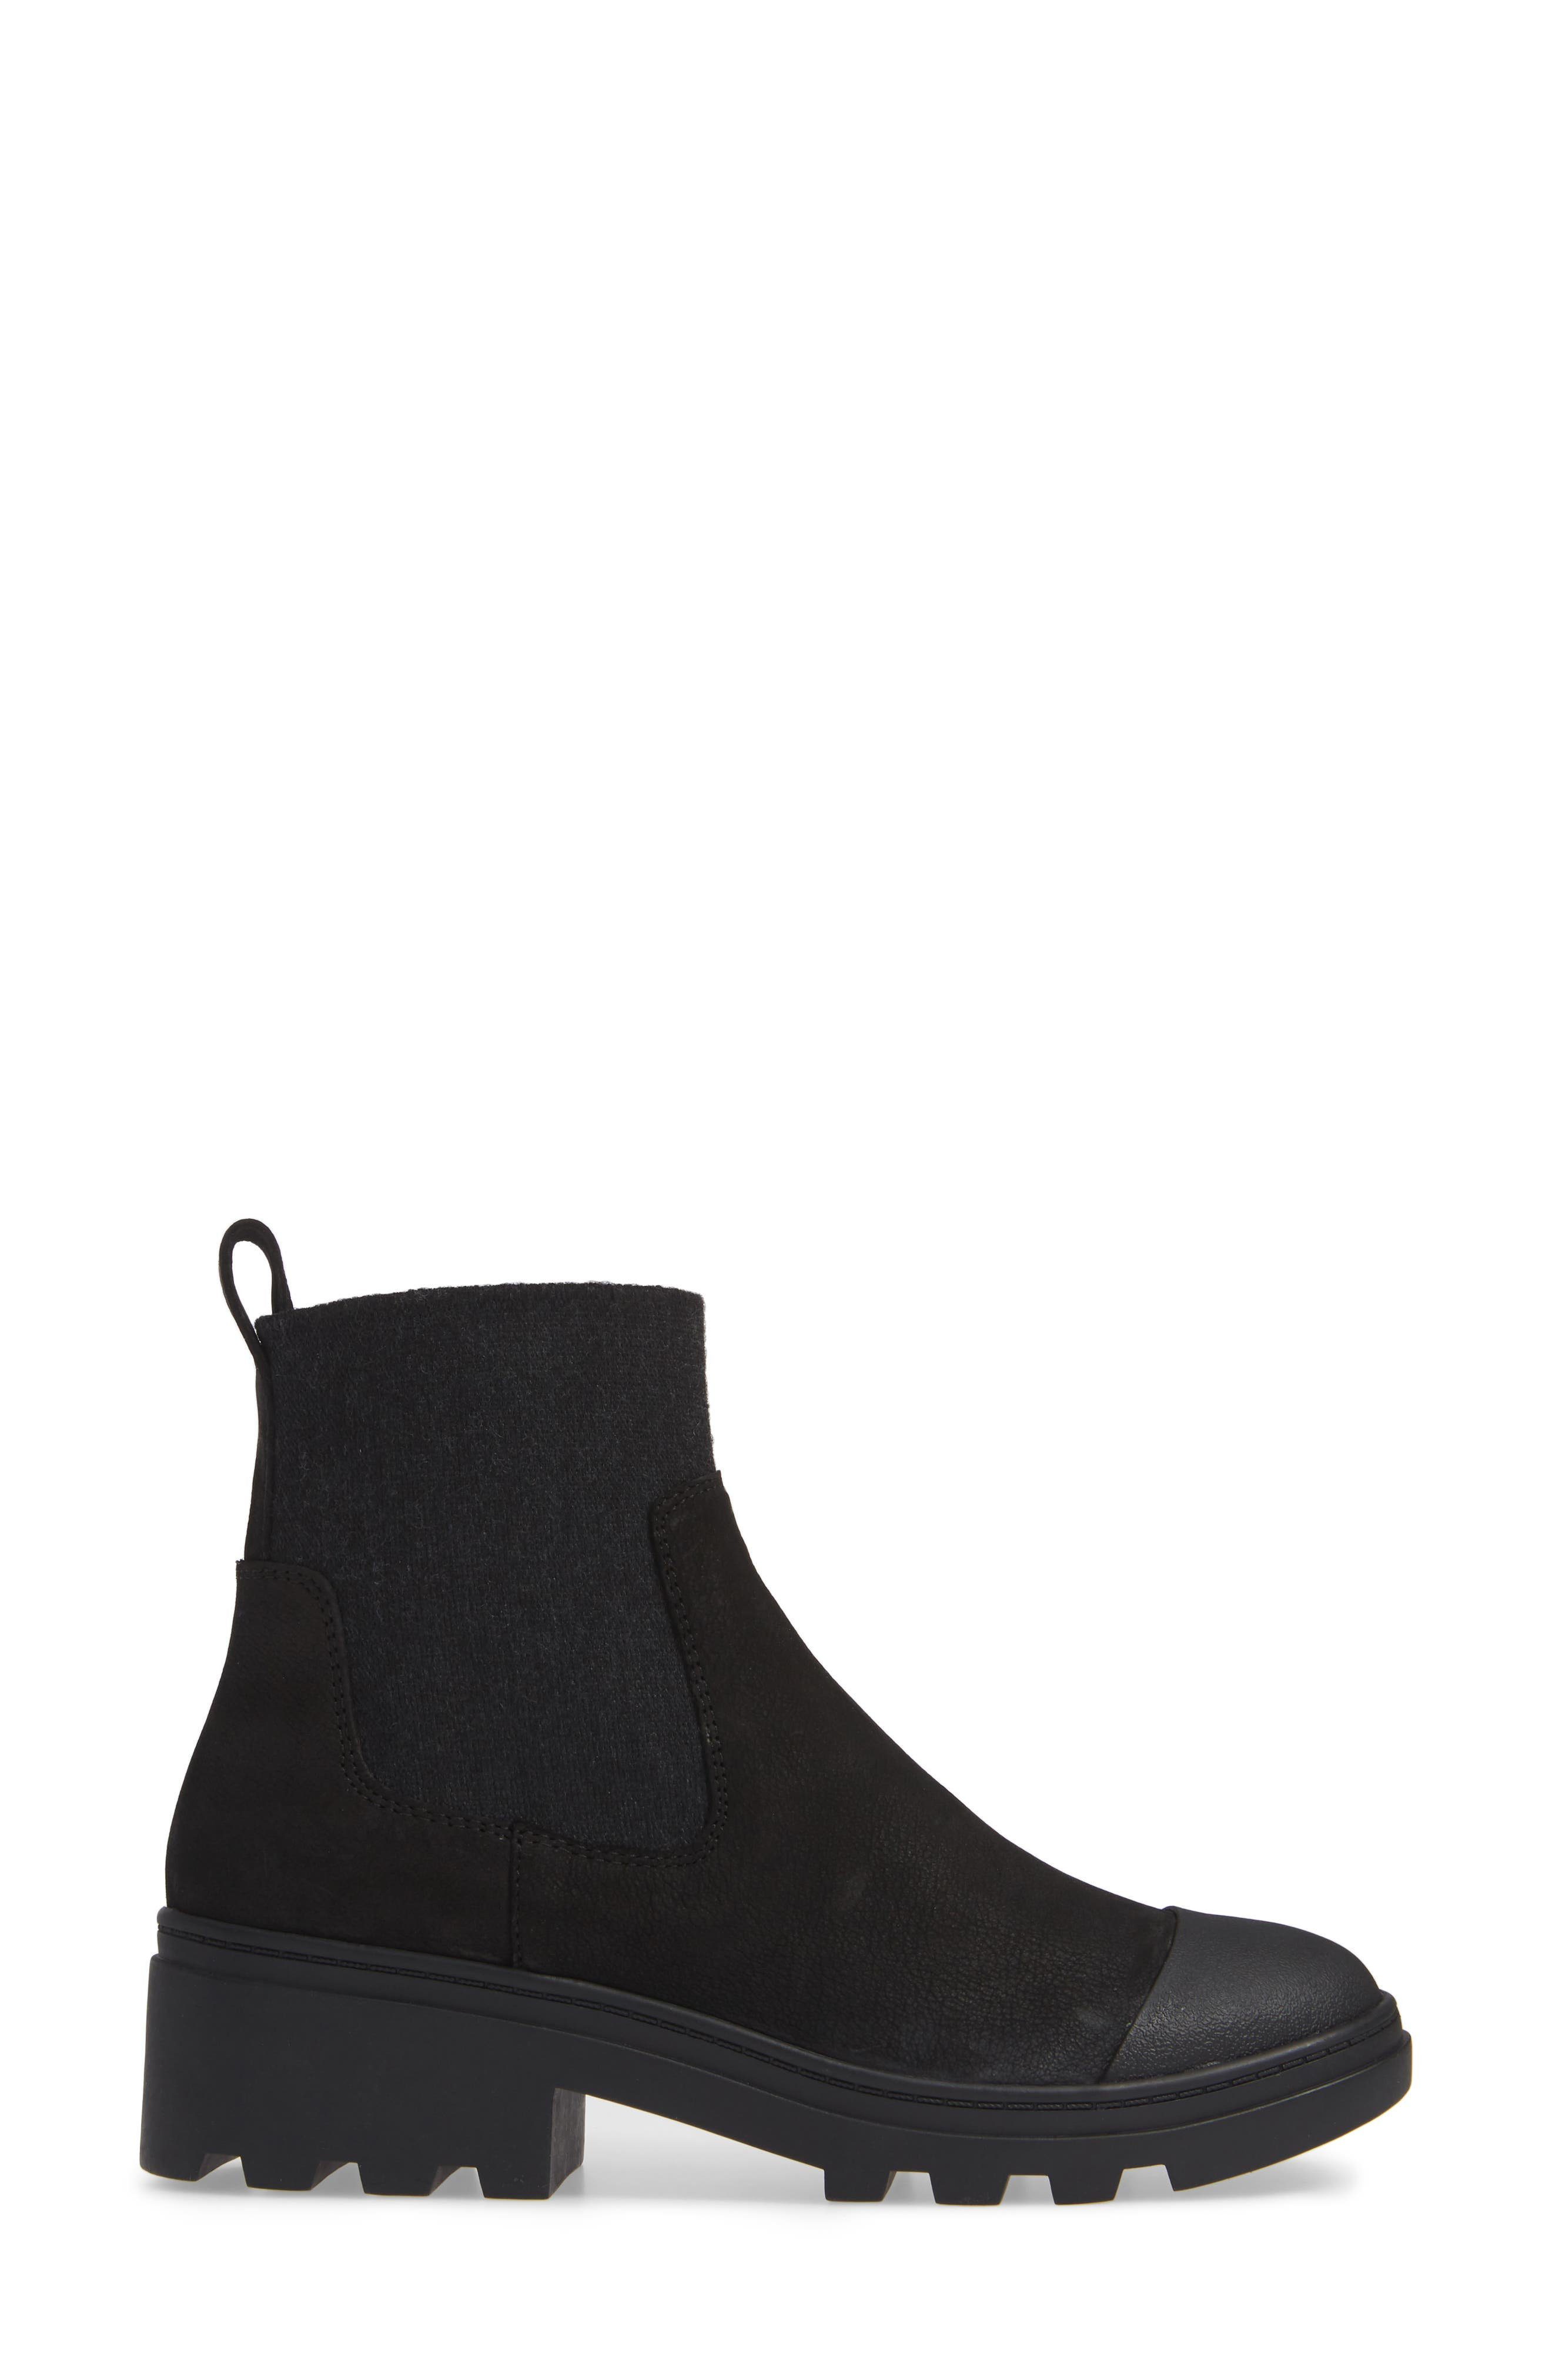 EILEEN FISHER,                             Teddy Bootie,                             Alternate thumbnail 3, color,                             001